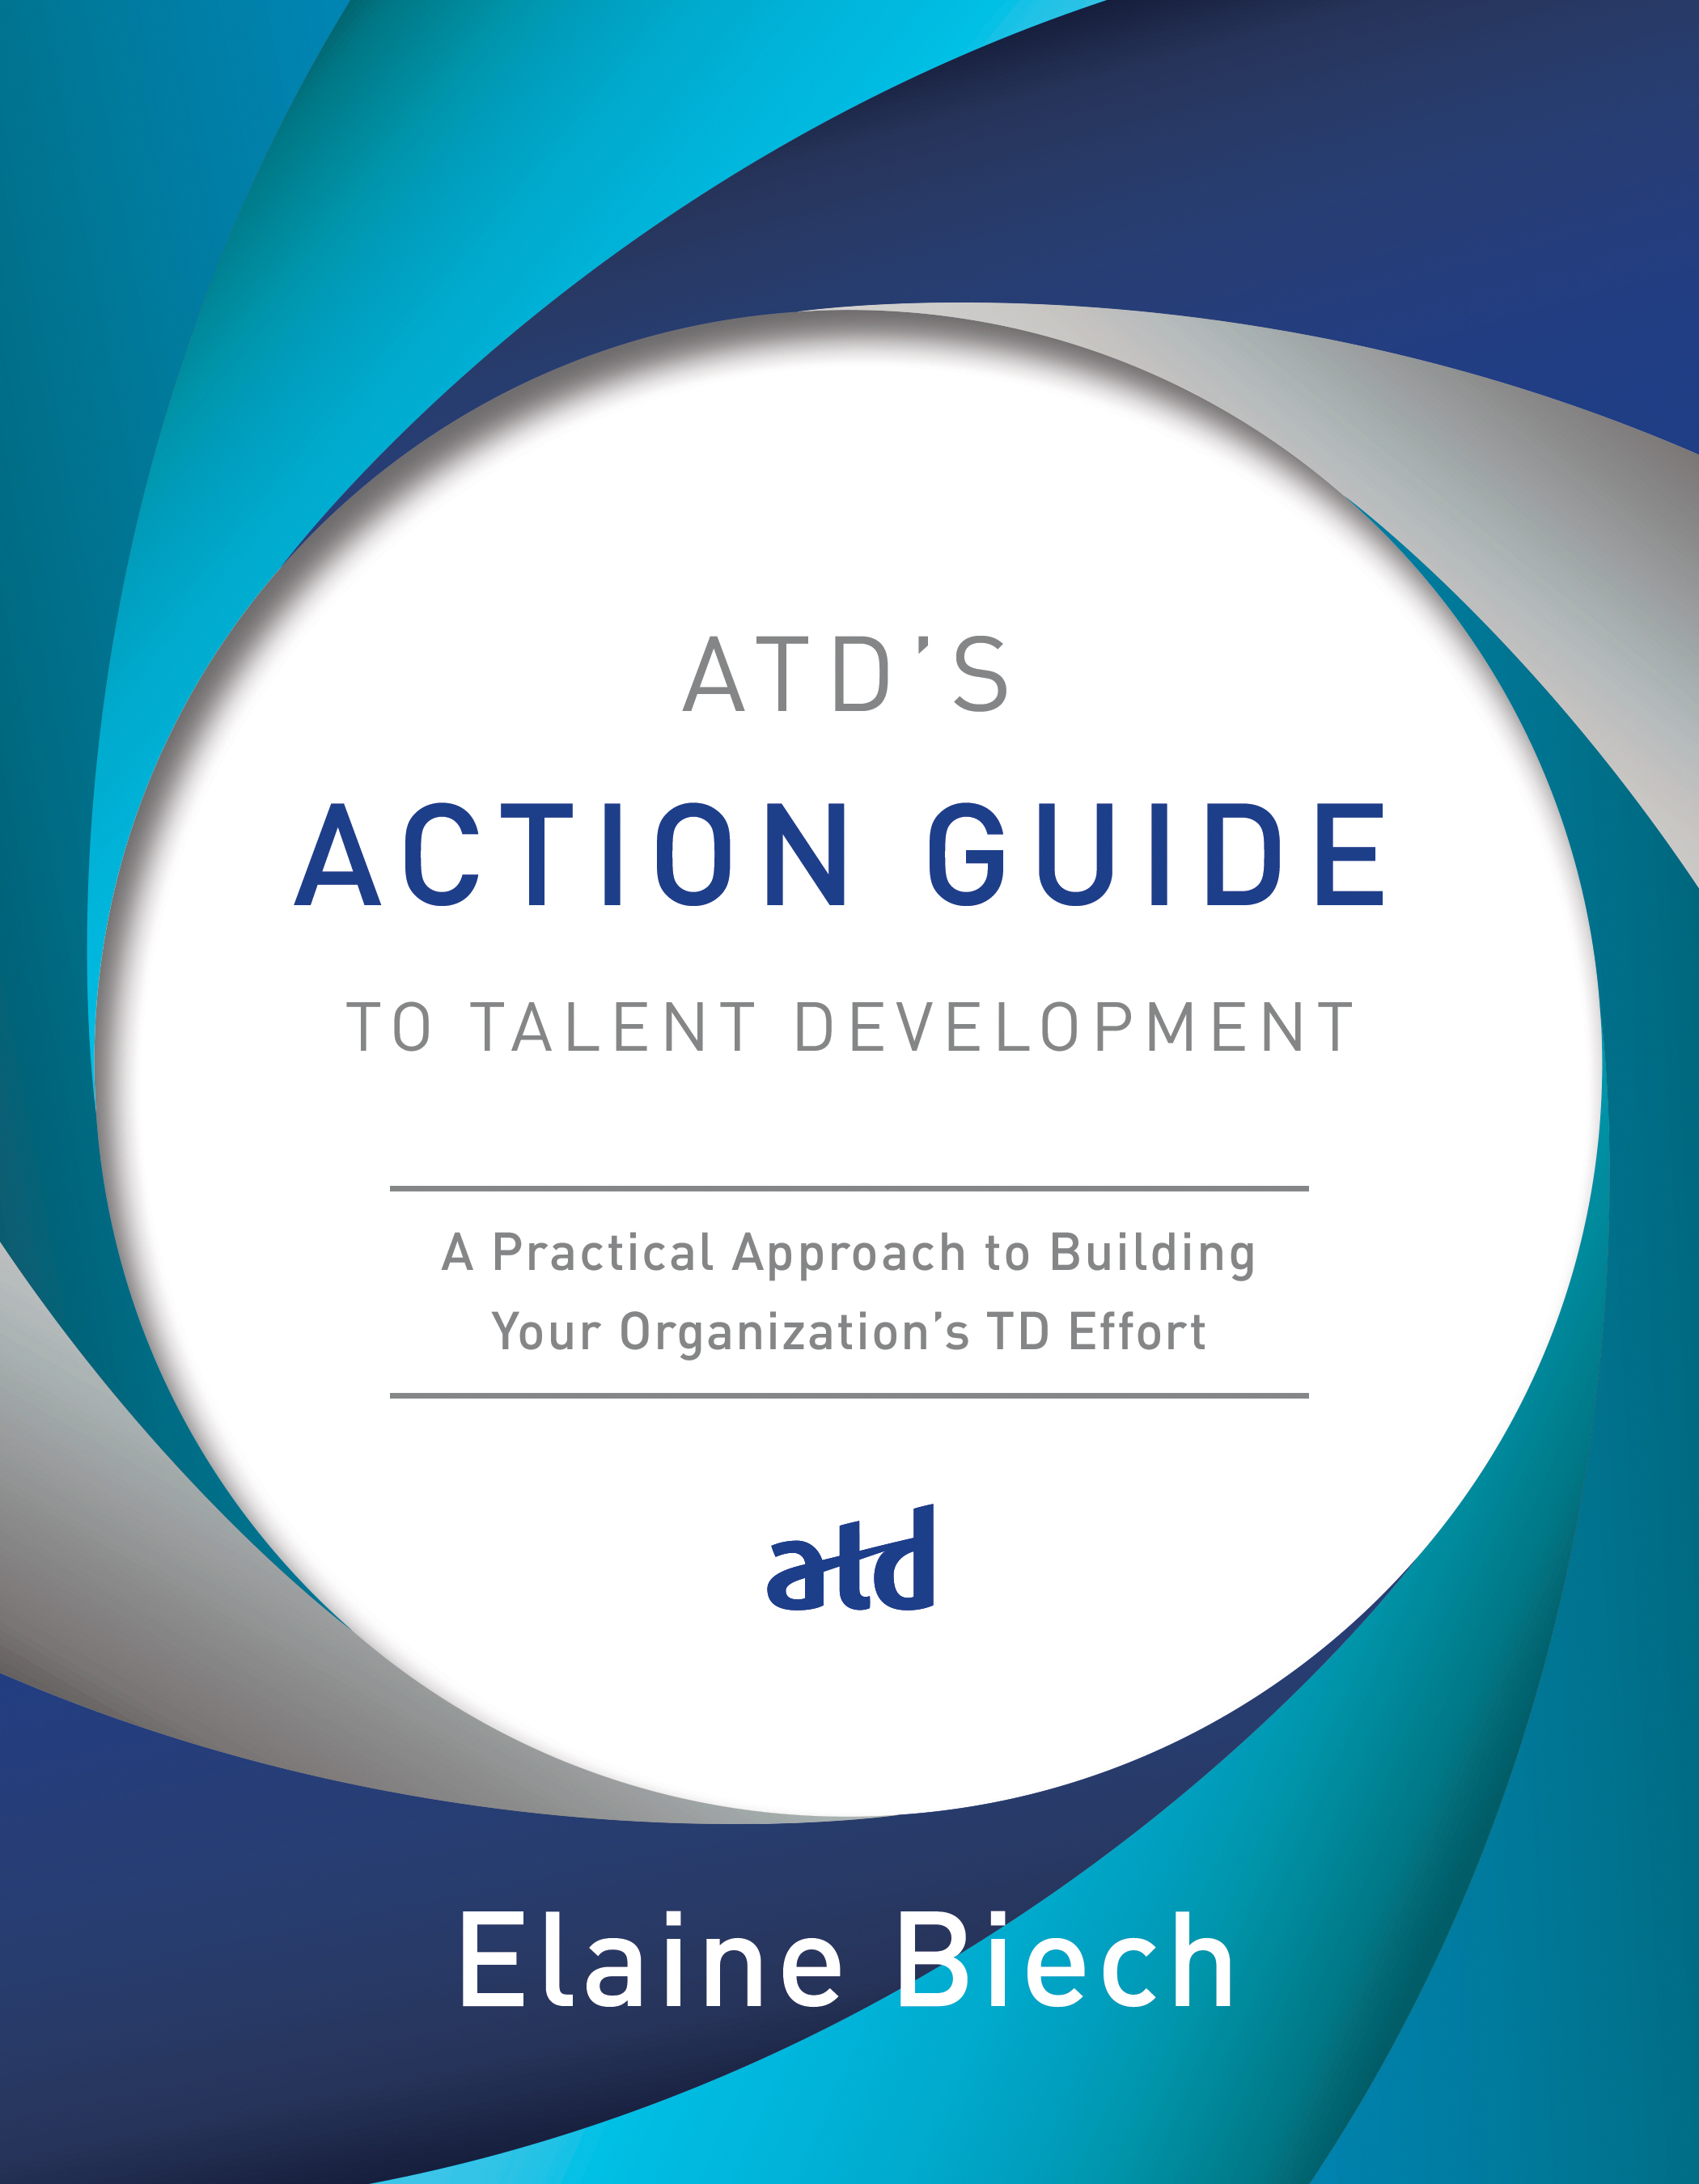 Atd Reviewed 100 Years From Now >> Atd S Action Guide To Talent Development